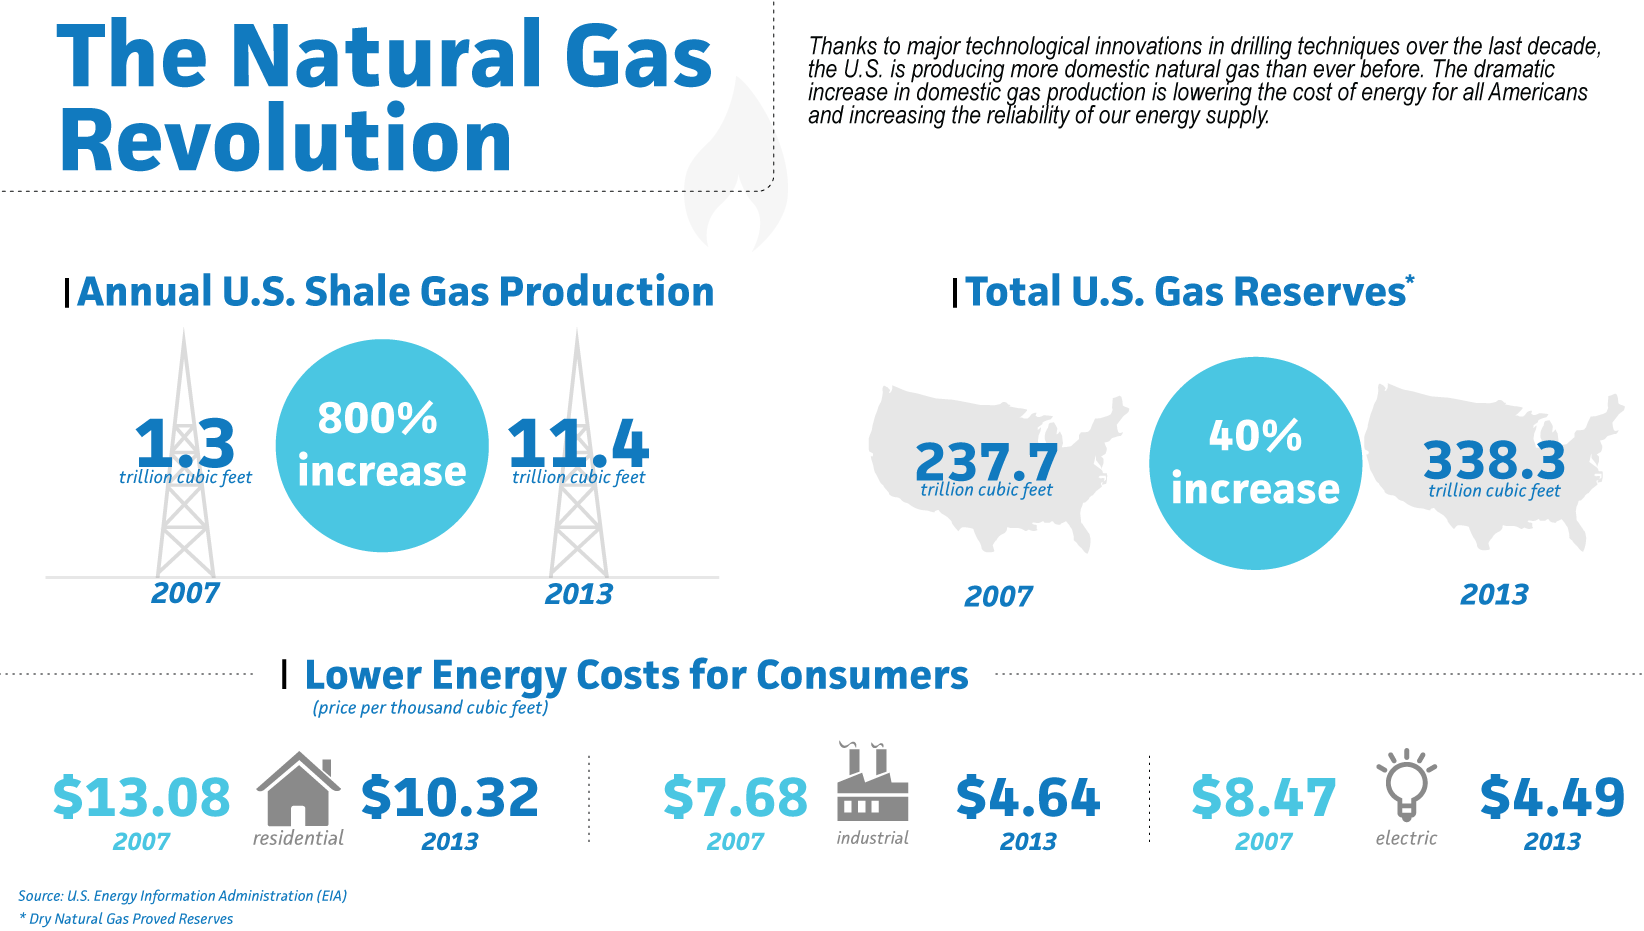 The Natural Gas Revolution infographic